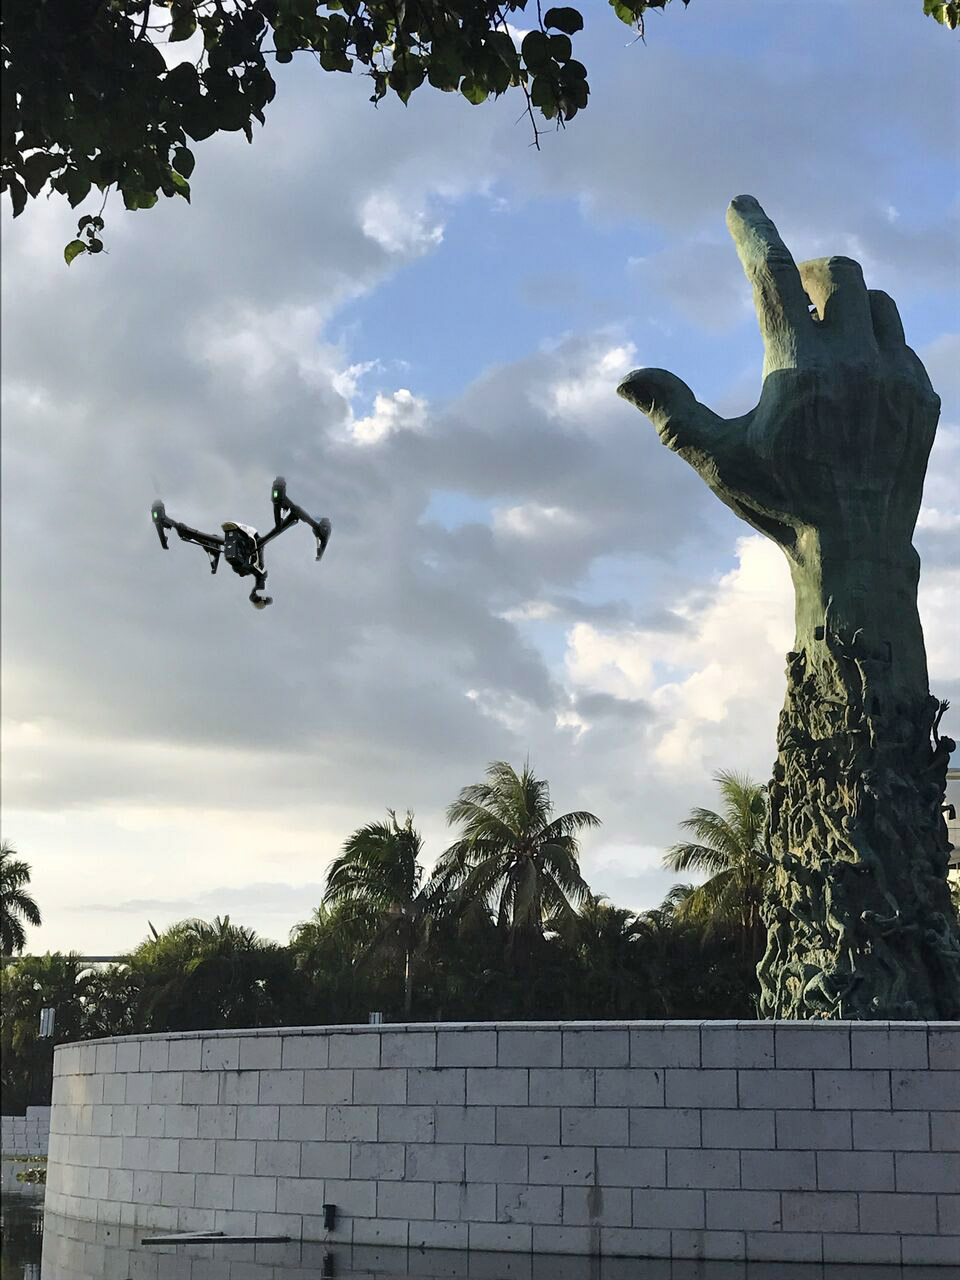 Our drone orbiting architect Ken Treister's landmark sculpture.